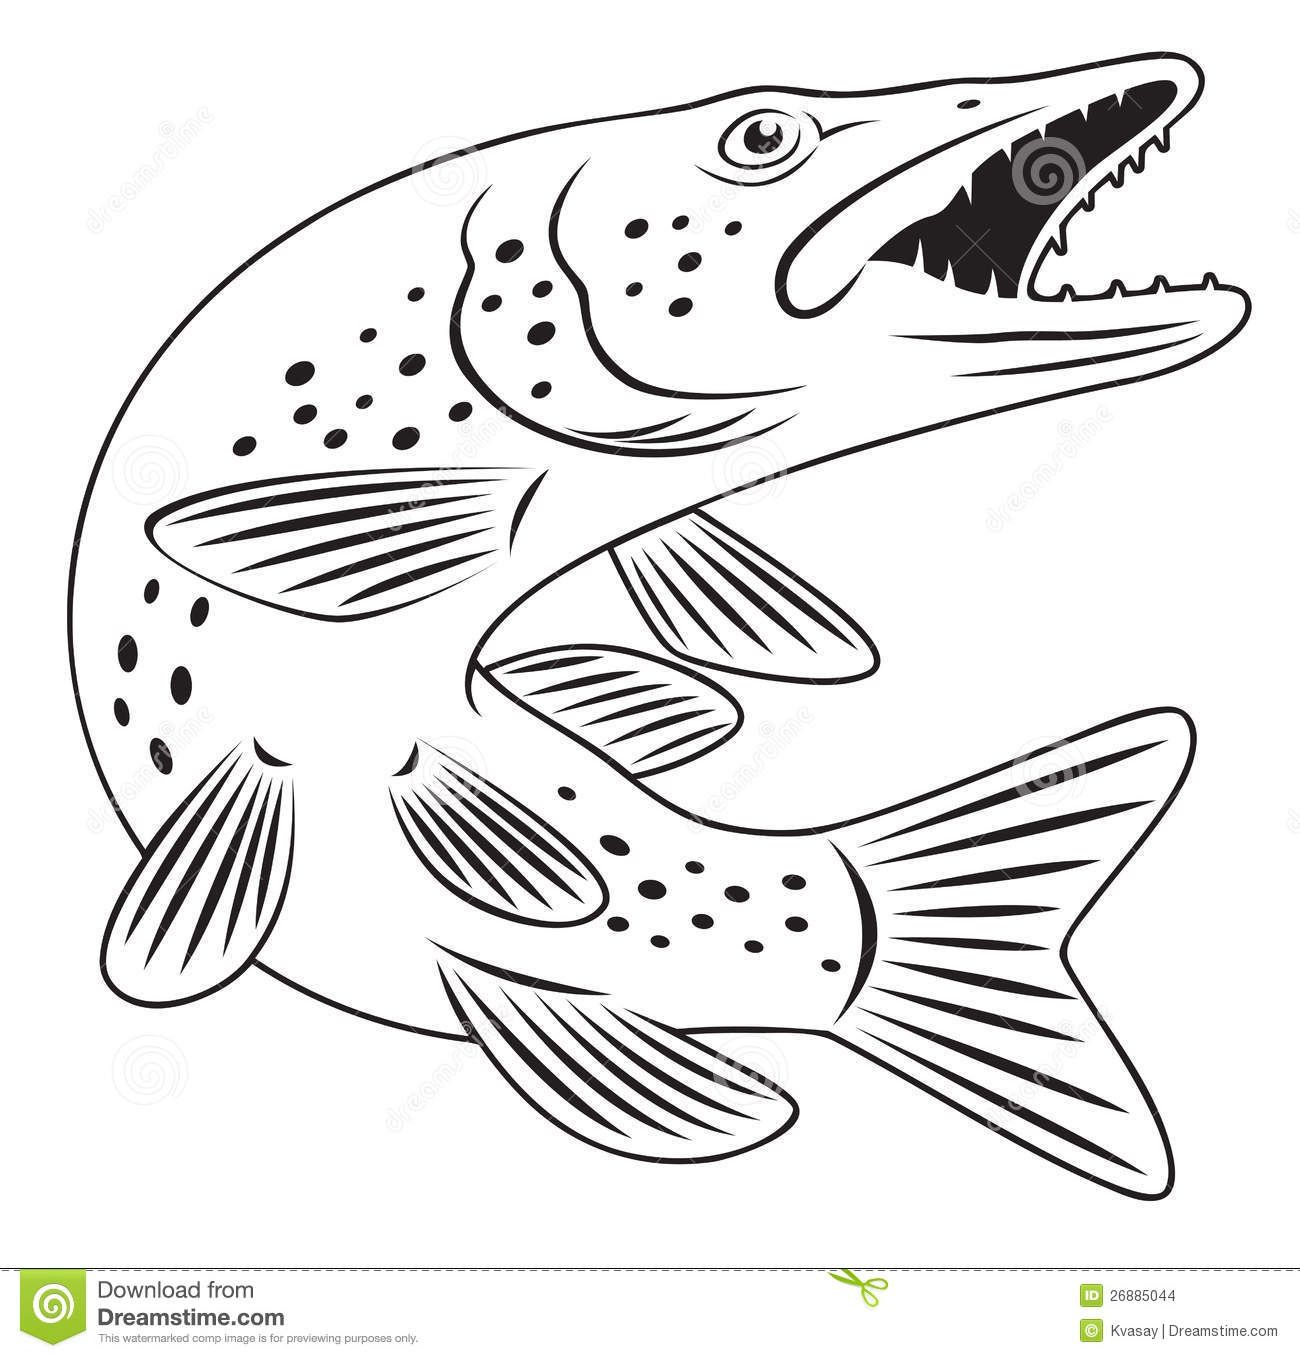 bass fish coloring pages animals u2026 pinteres u2026